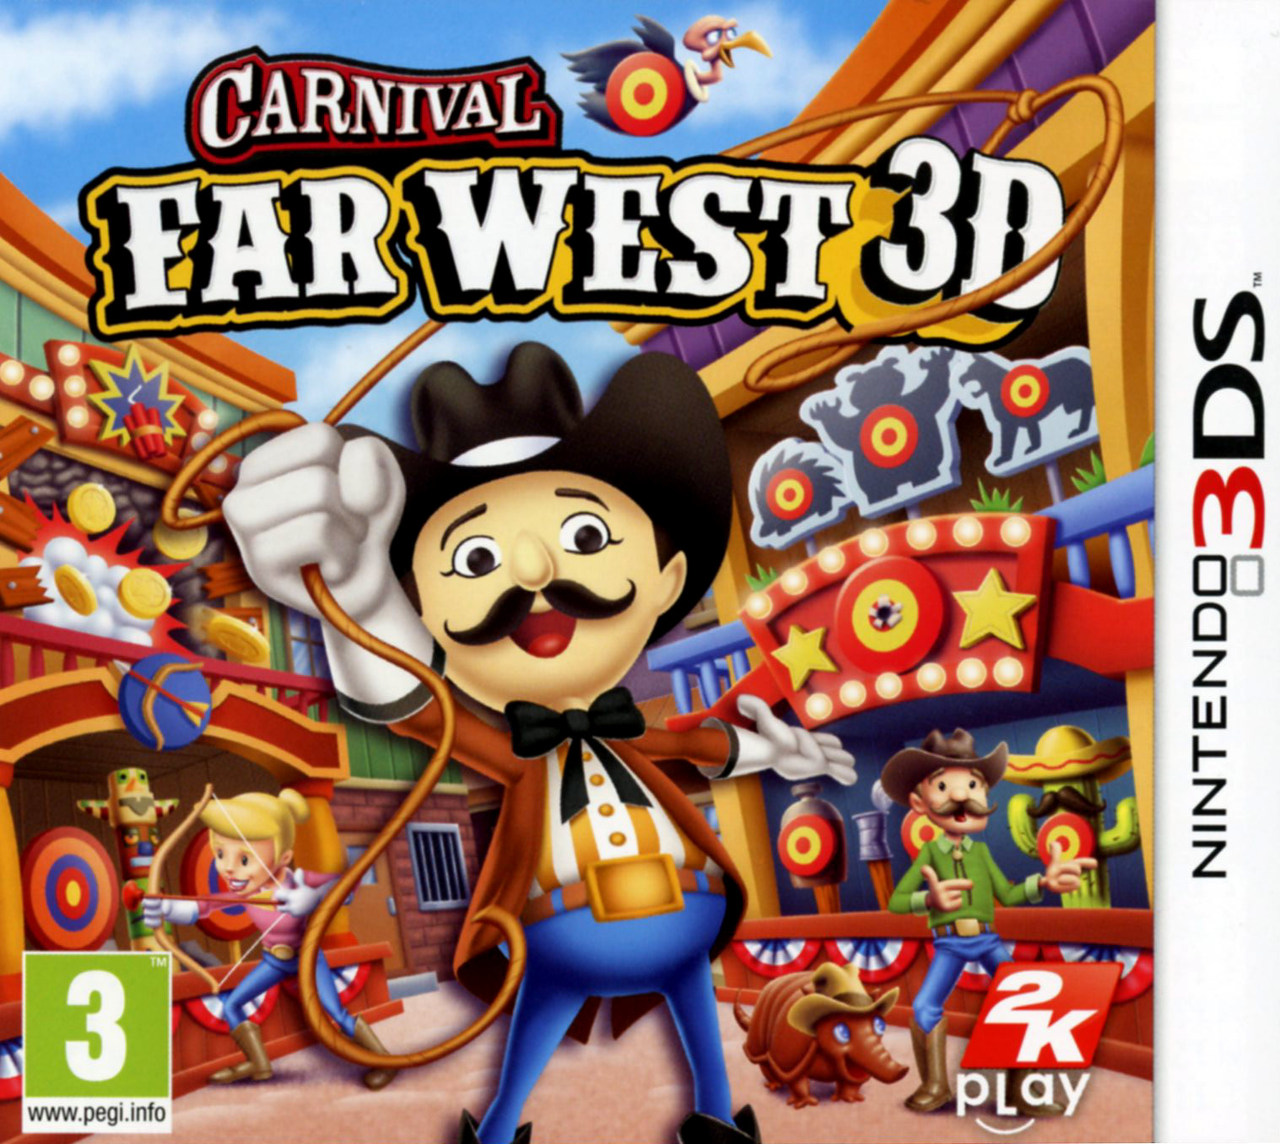 Carnival Far West 3D [Multi] [Nintendo 3DS]